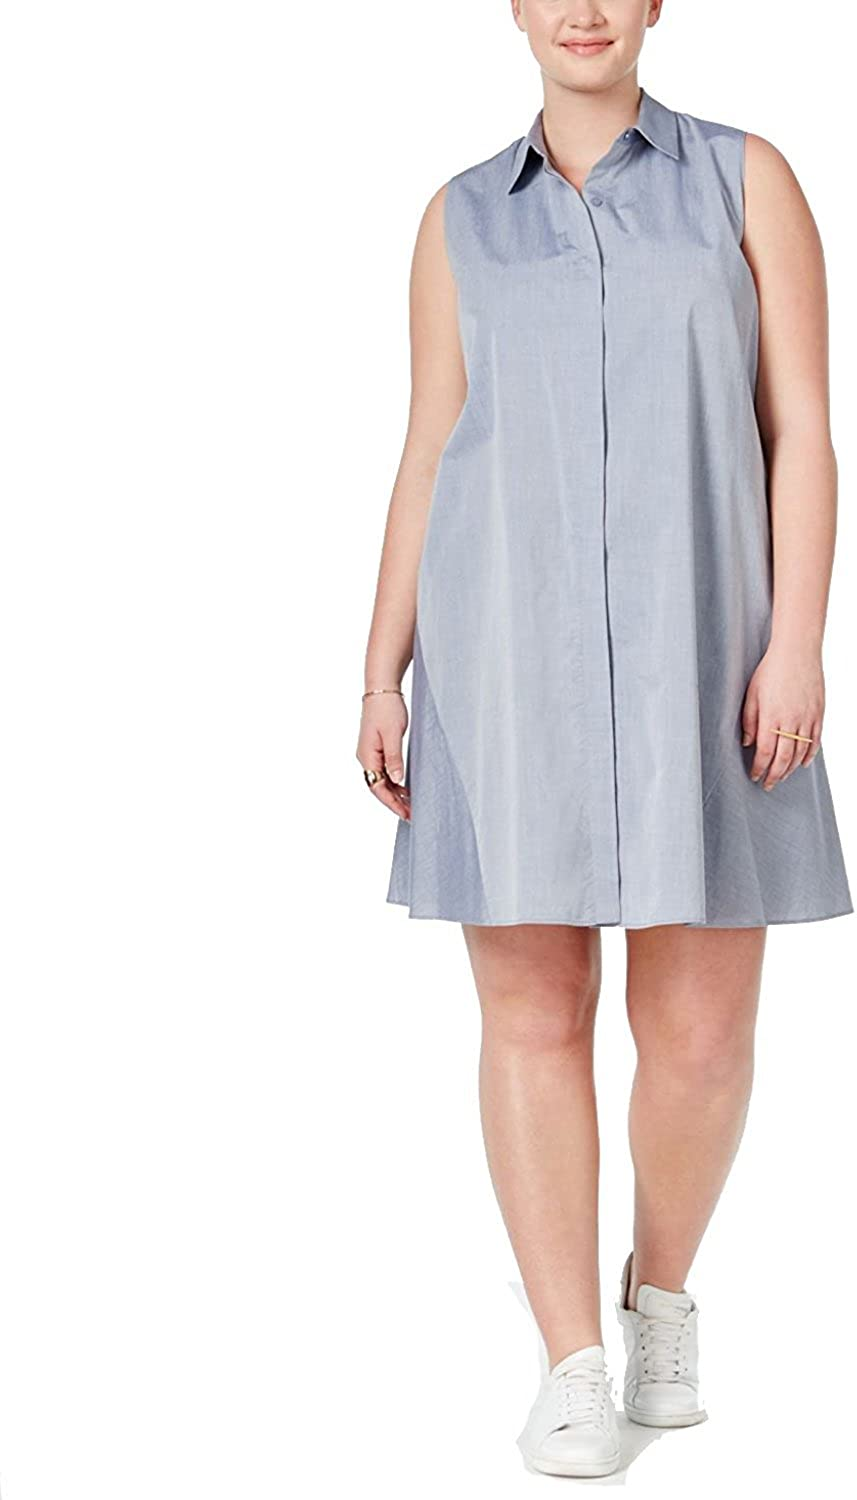 Rachel Rachel Roy Sleeveless Shirtdress